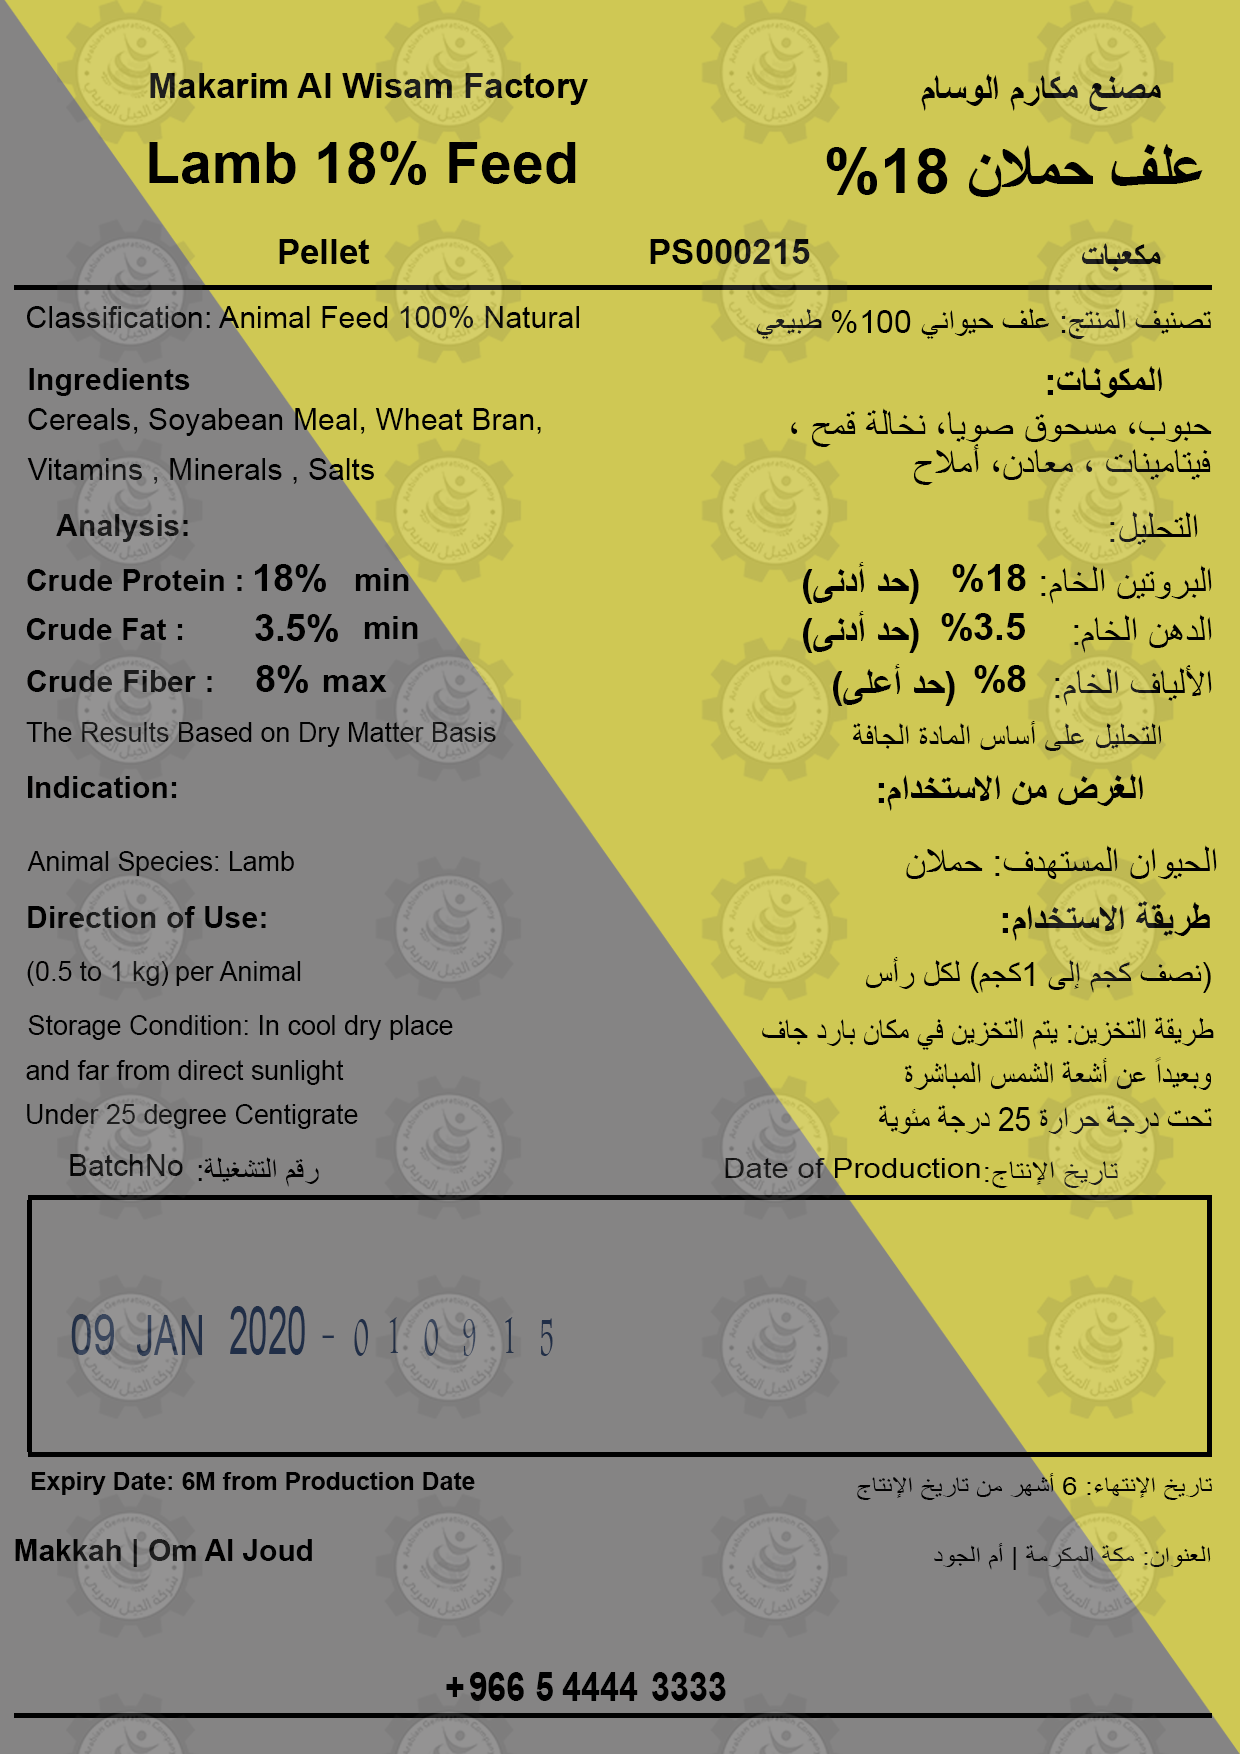 Wisam sheep feed sale from d.php?hash=PK2M7NOYK